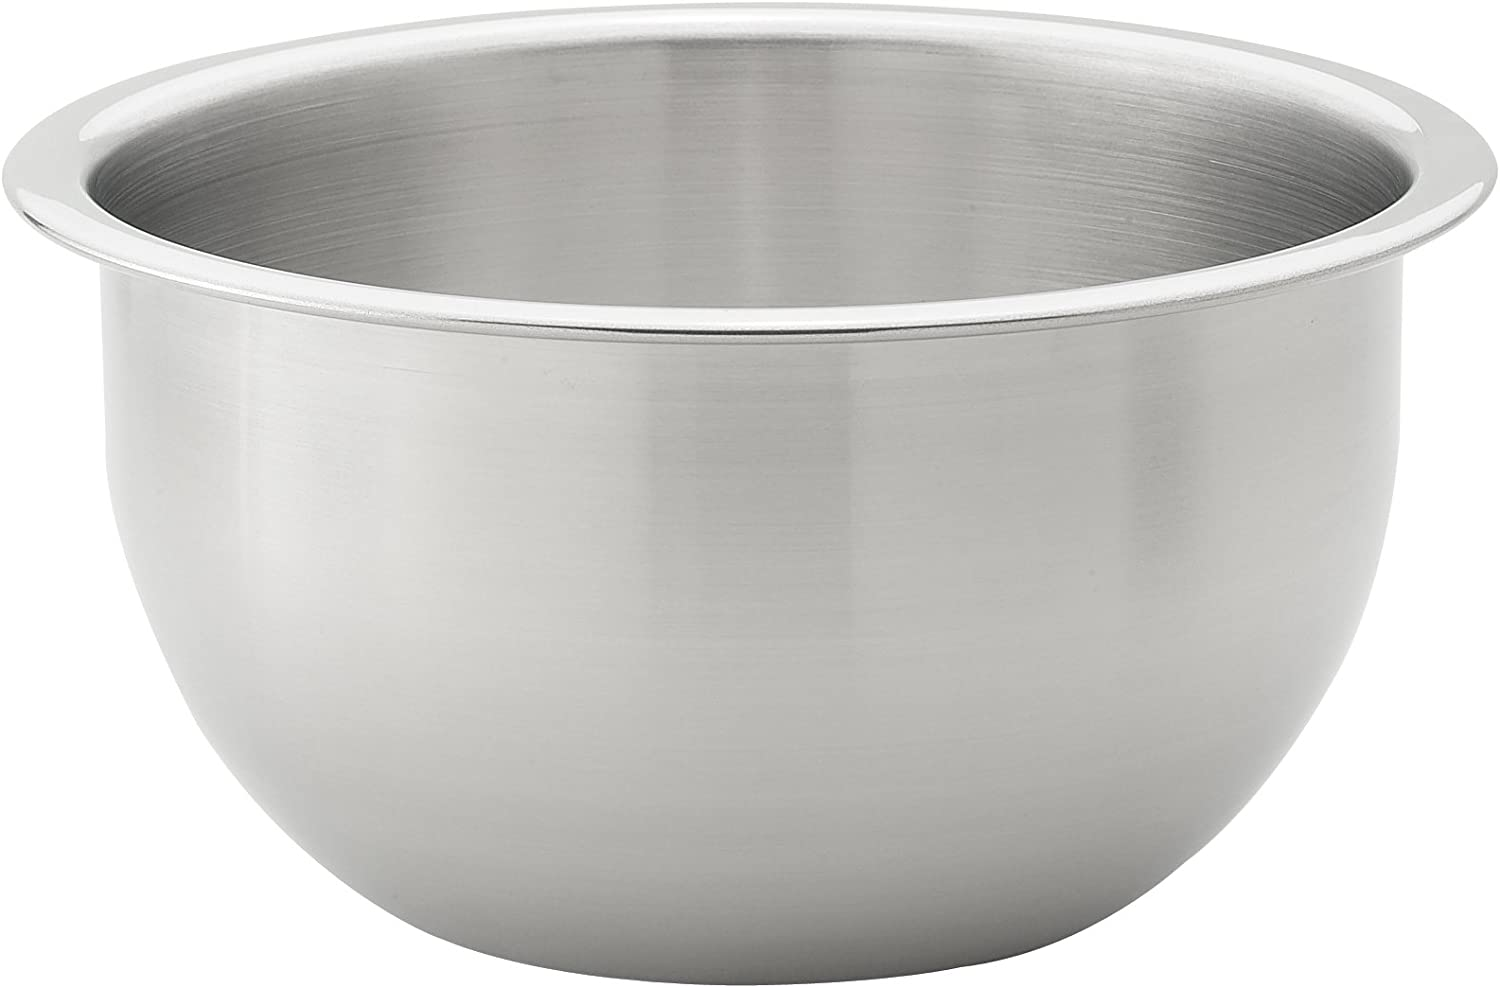 HIC Harold Import Co. 48002 HIC Essentials 4-Quart Stainless Steel Mixing Bowl